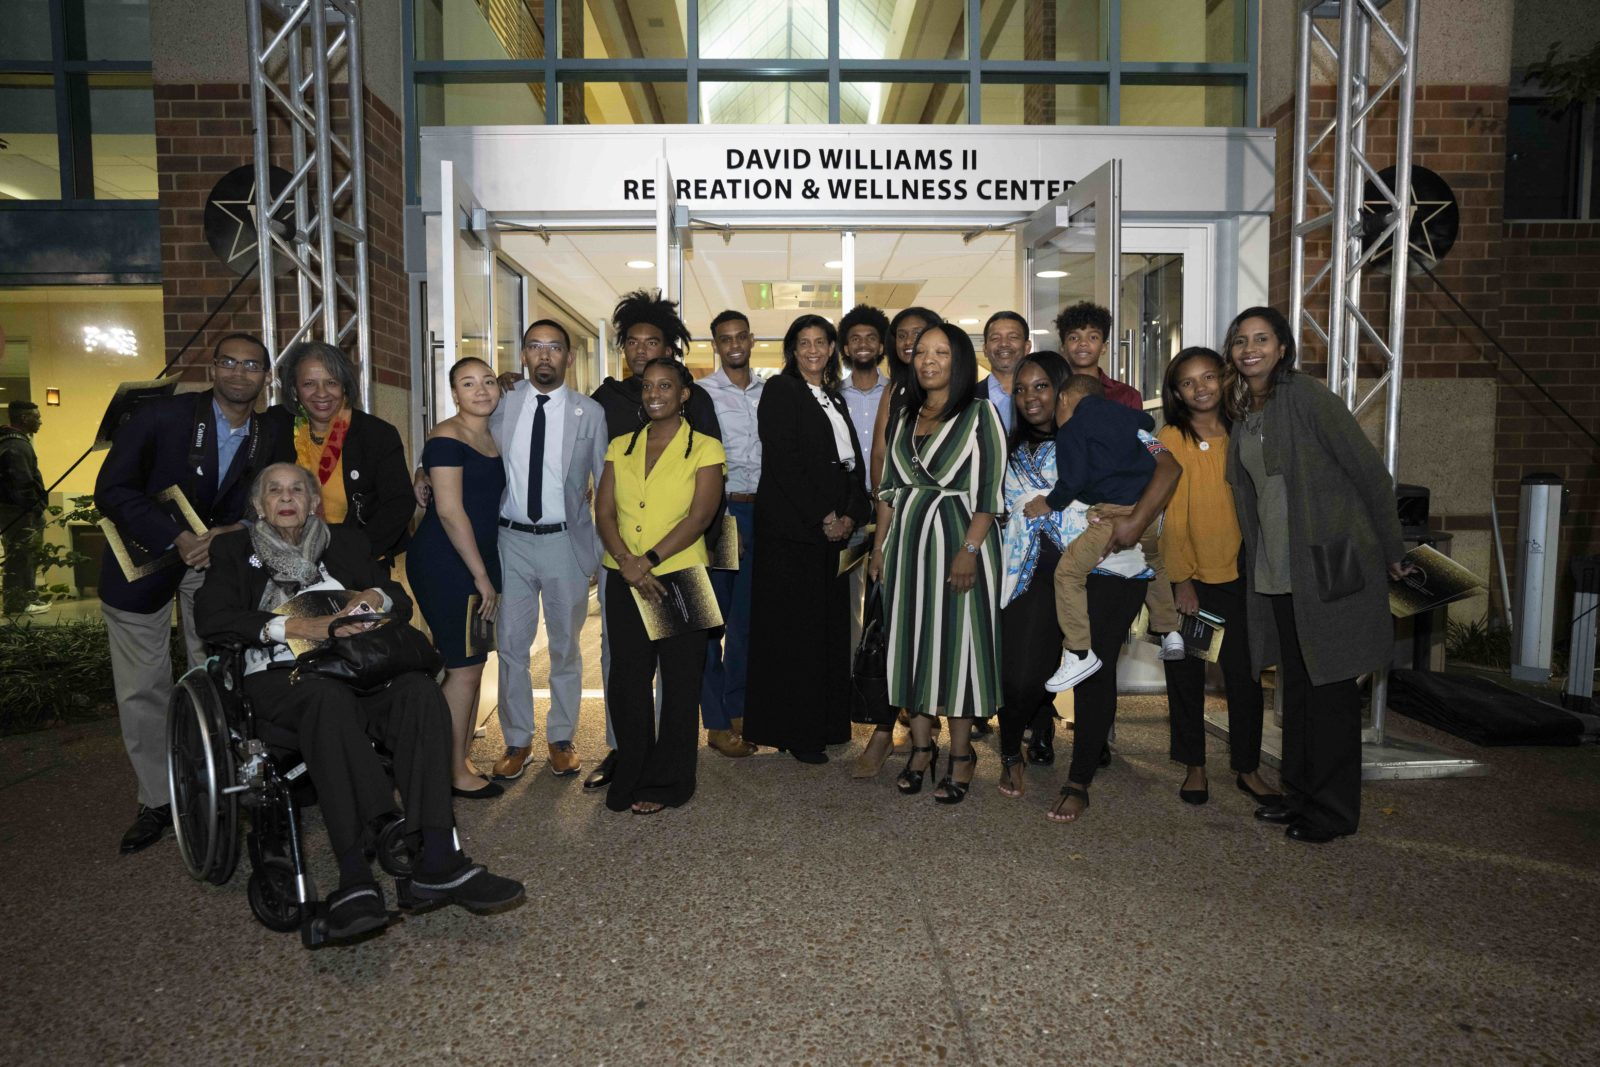 Friends and family of David Williams stand in front of the new signage at the David Williams II Recreation and Wellness Center. (John Russell/Vanderbilt University)